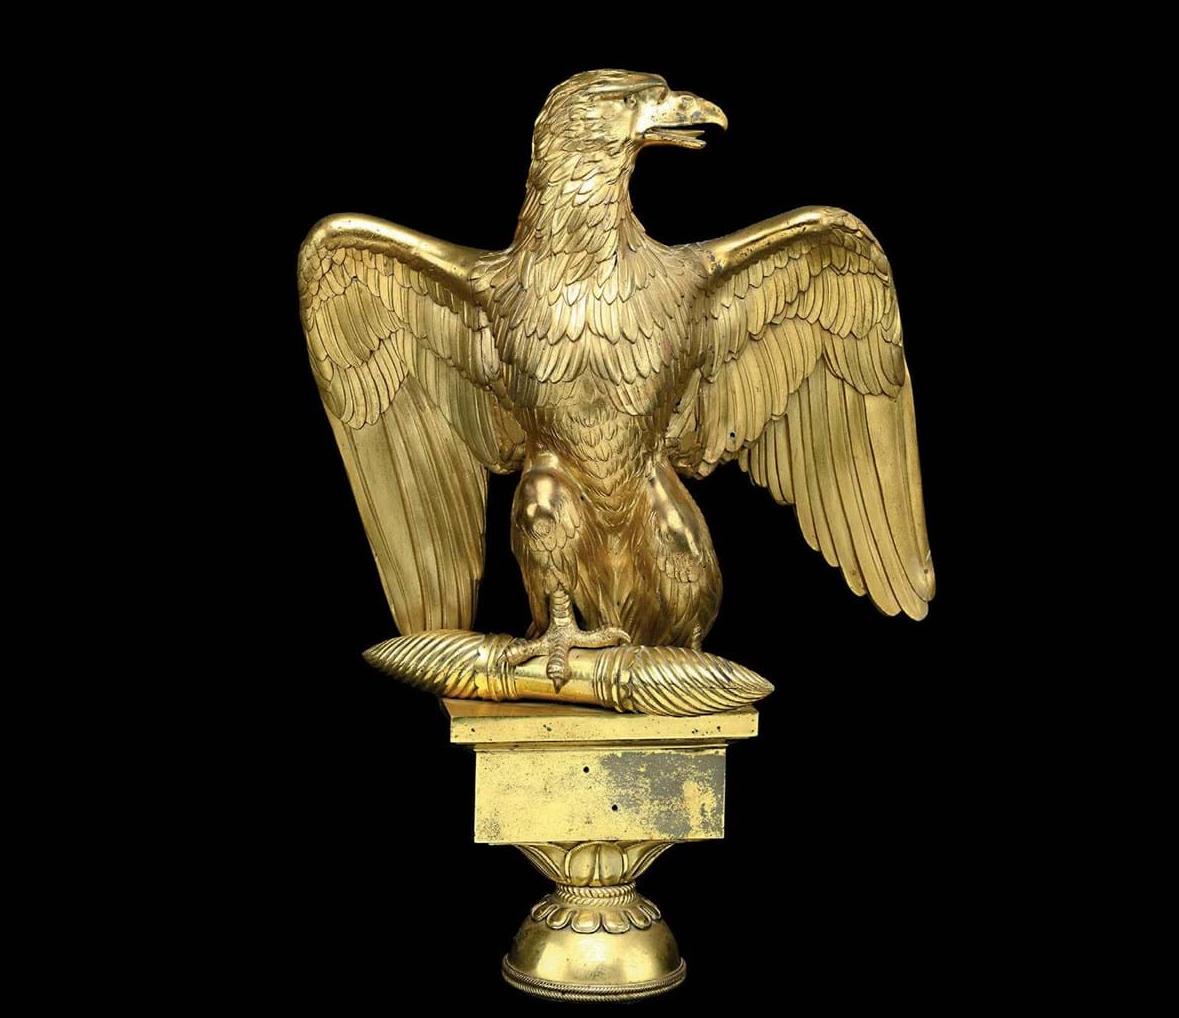 Majestic composition French imperial bronze golden eagle sculpture for decoration